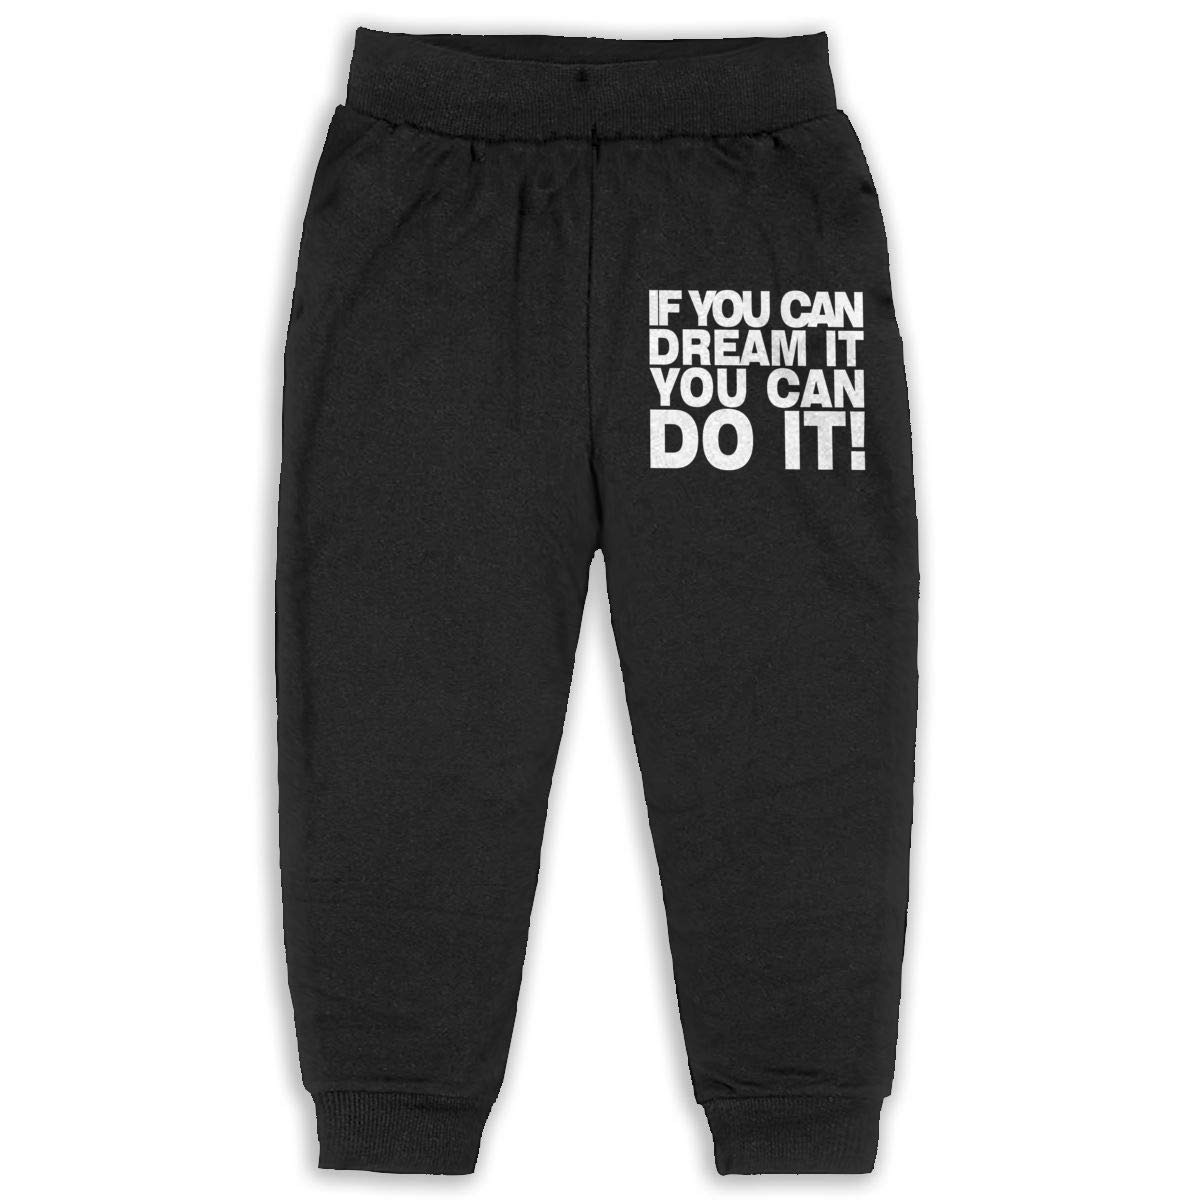 Cqelng Oii If You Dream It You Can Do It 2-6T Boys Active Joggers Soft Pants